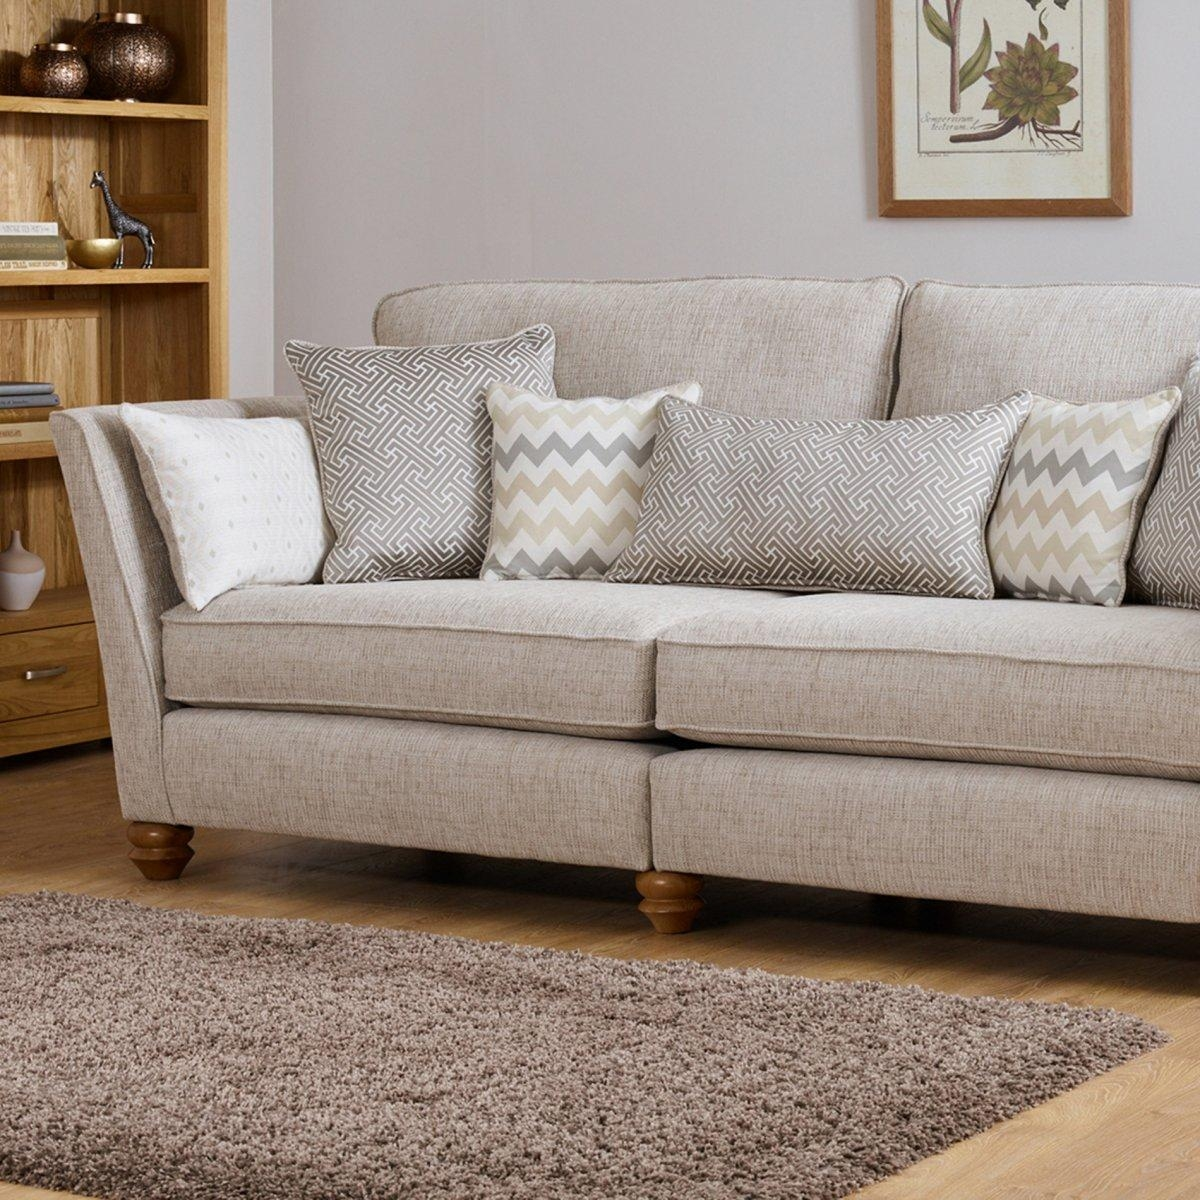 Gainsborough 3 Seater Sofa In Beige | Oak Furniture Land With Regard To Three Seater Sofas (Image 11 of 20)